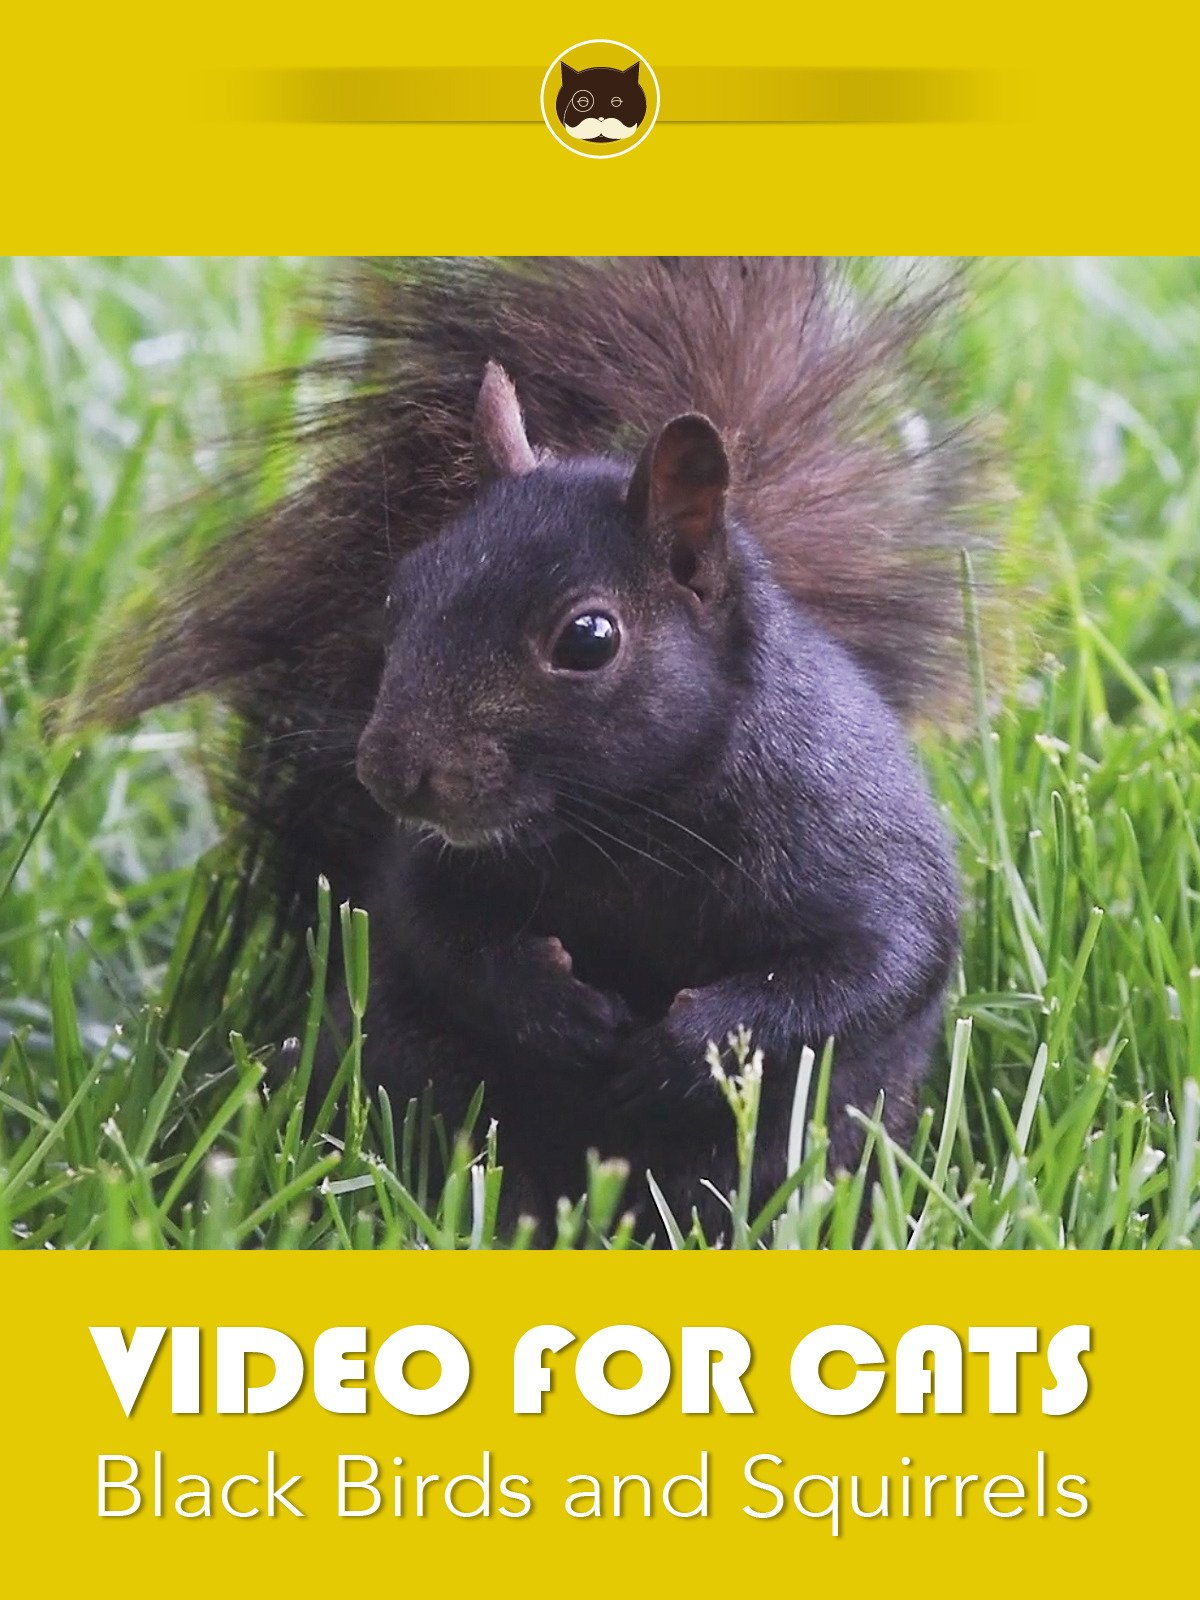 Video for Cats Black Birds and Squirrels